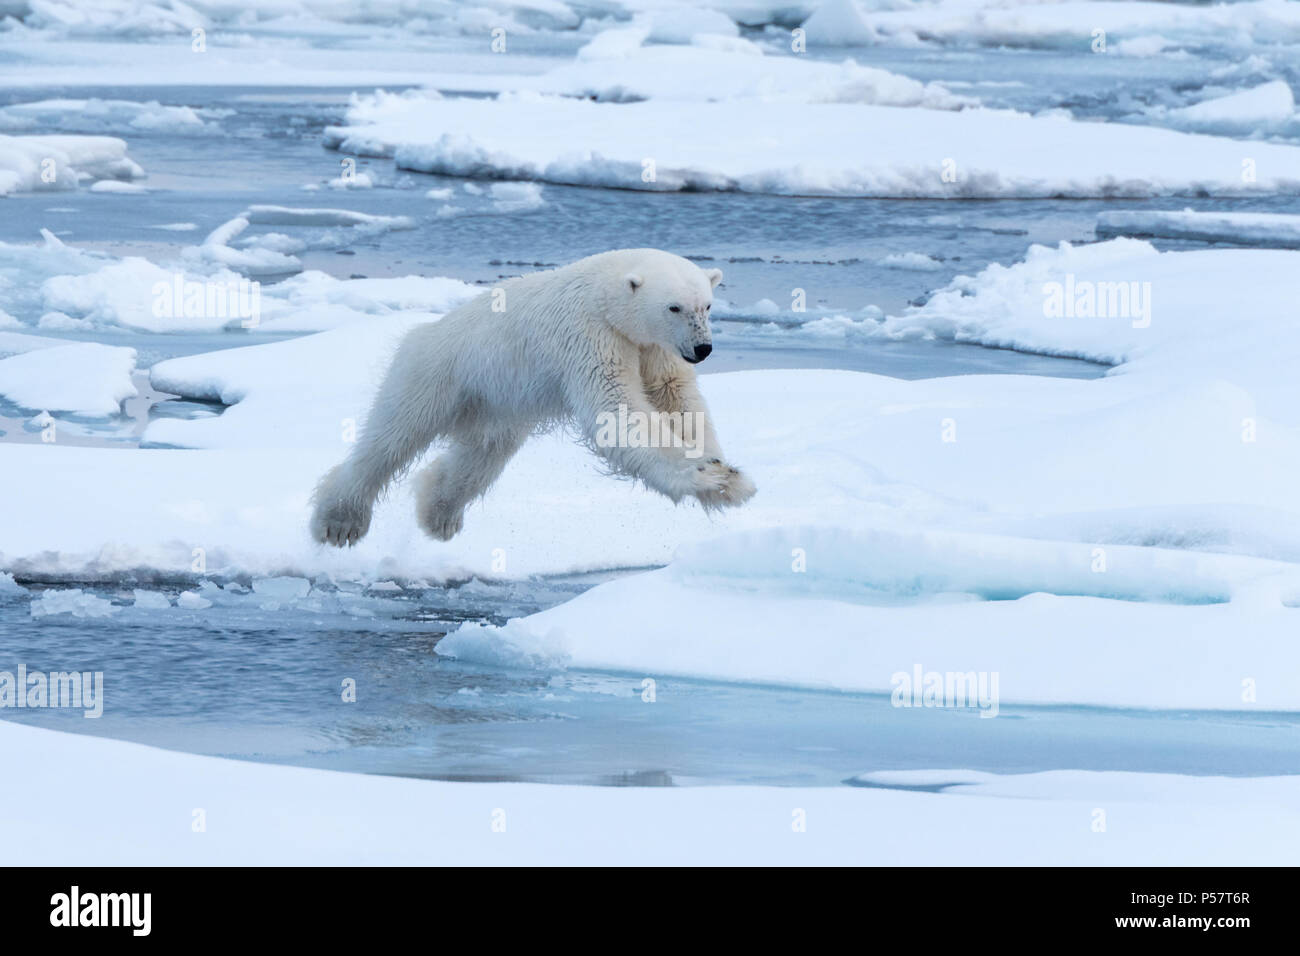 Polar Bear jumping between ice floes - Stock Image